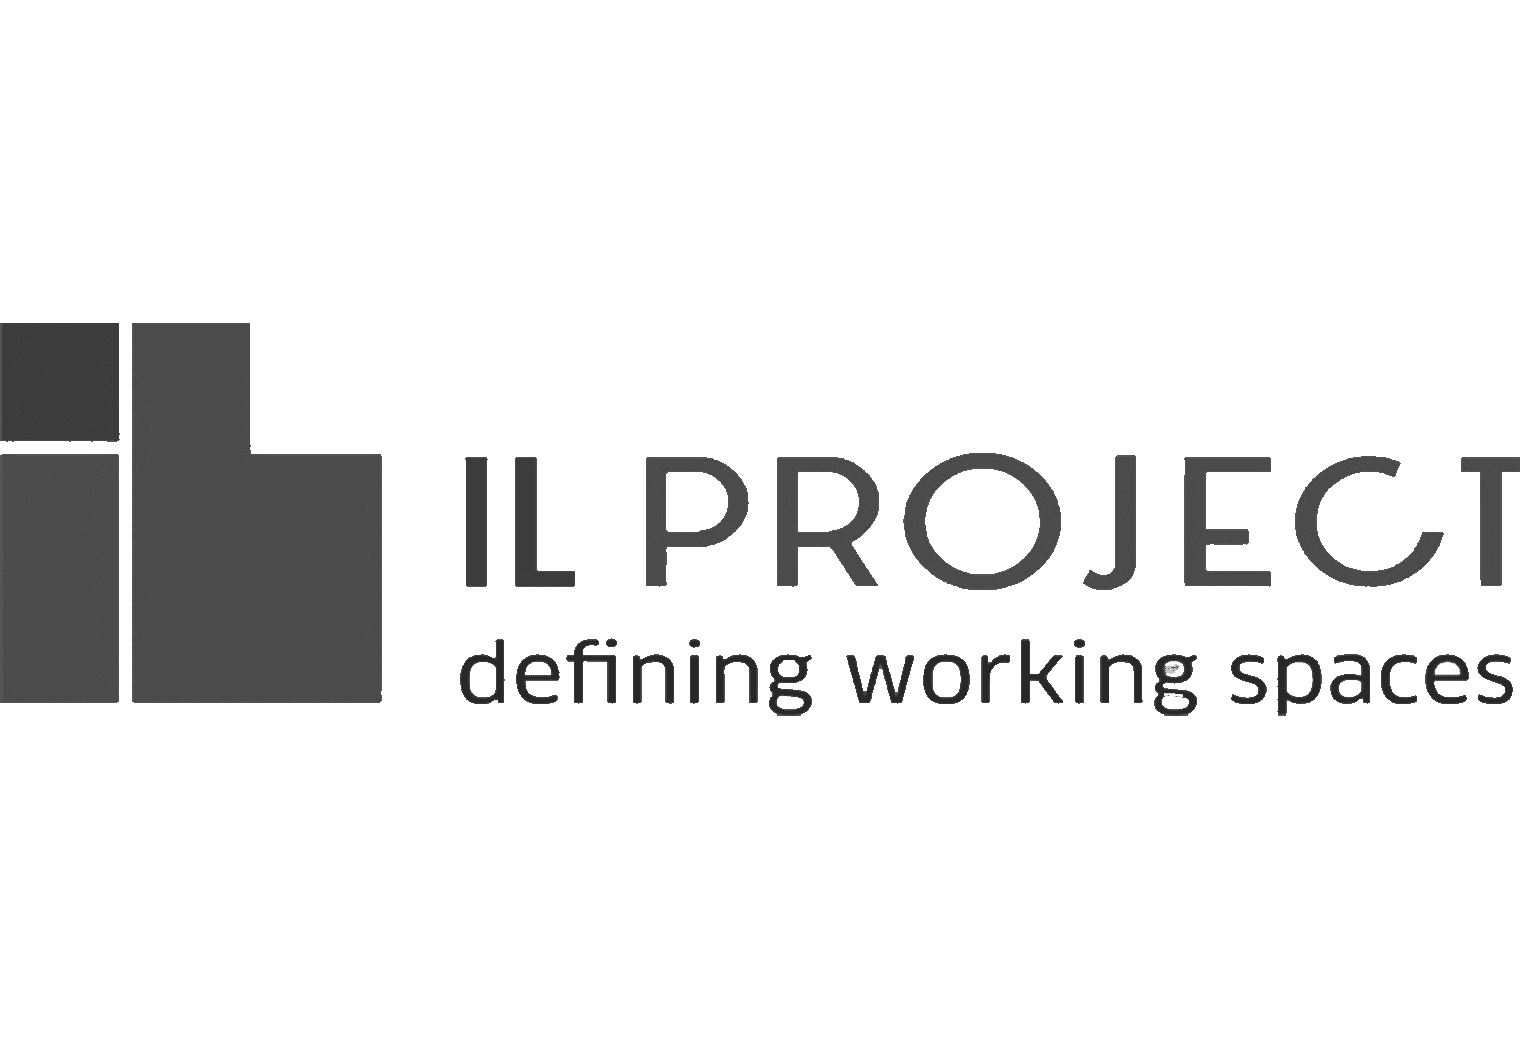 Il project